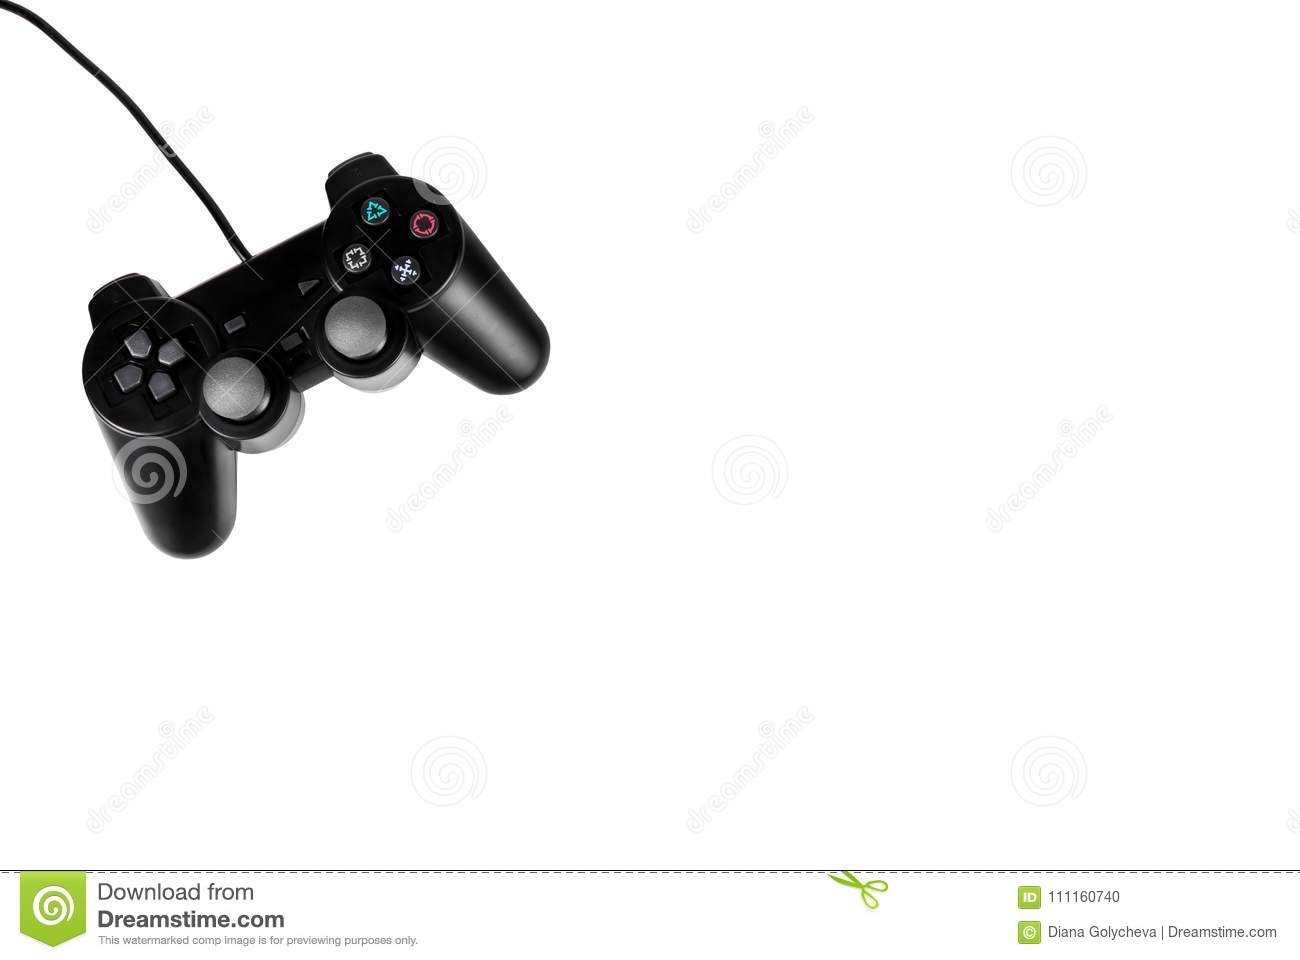 Black joystick on white background. Entertainment and video games. GamePad isolated on white